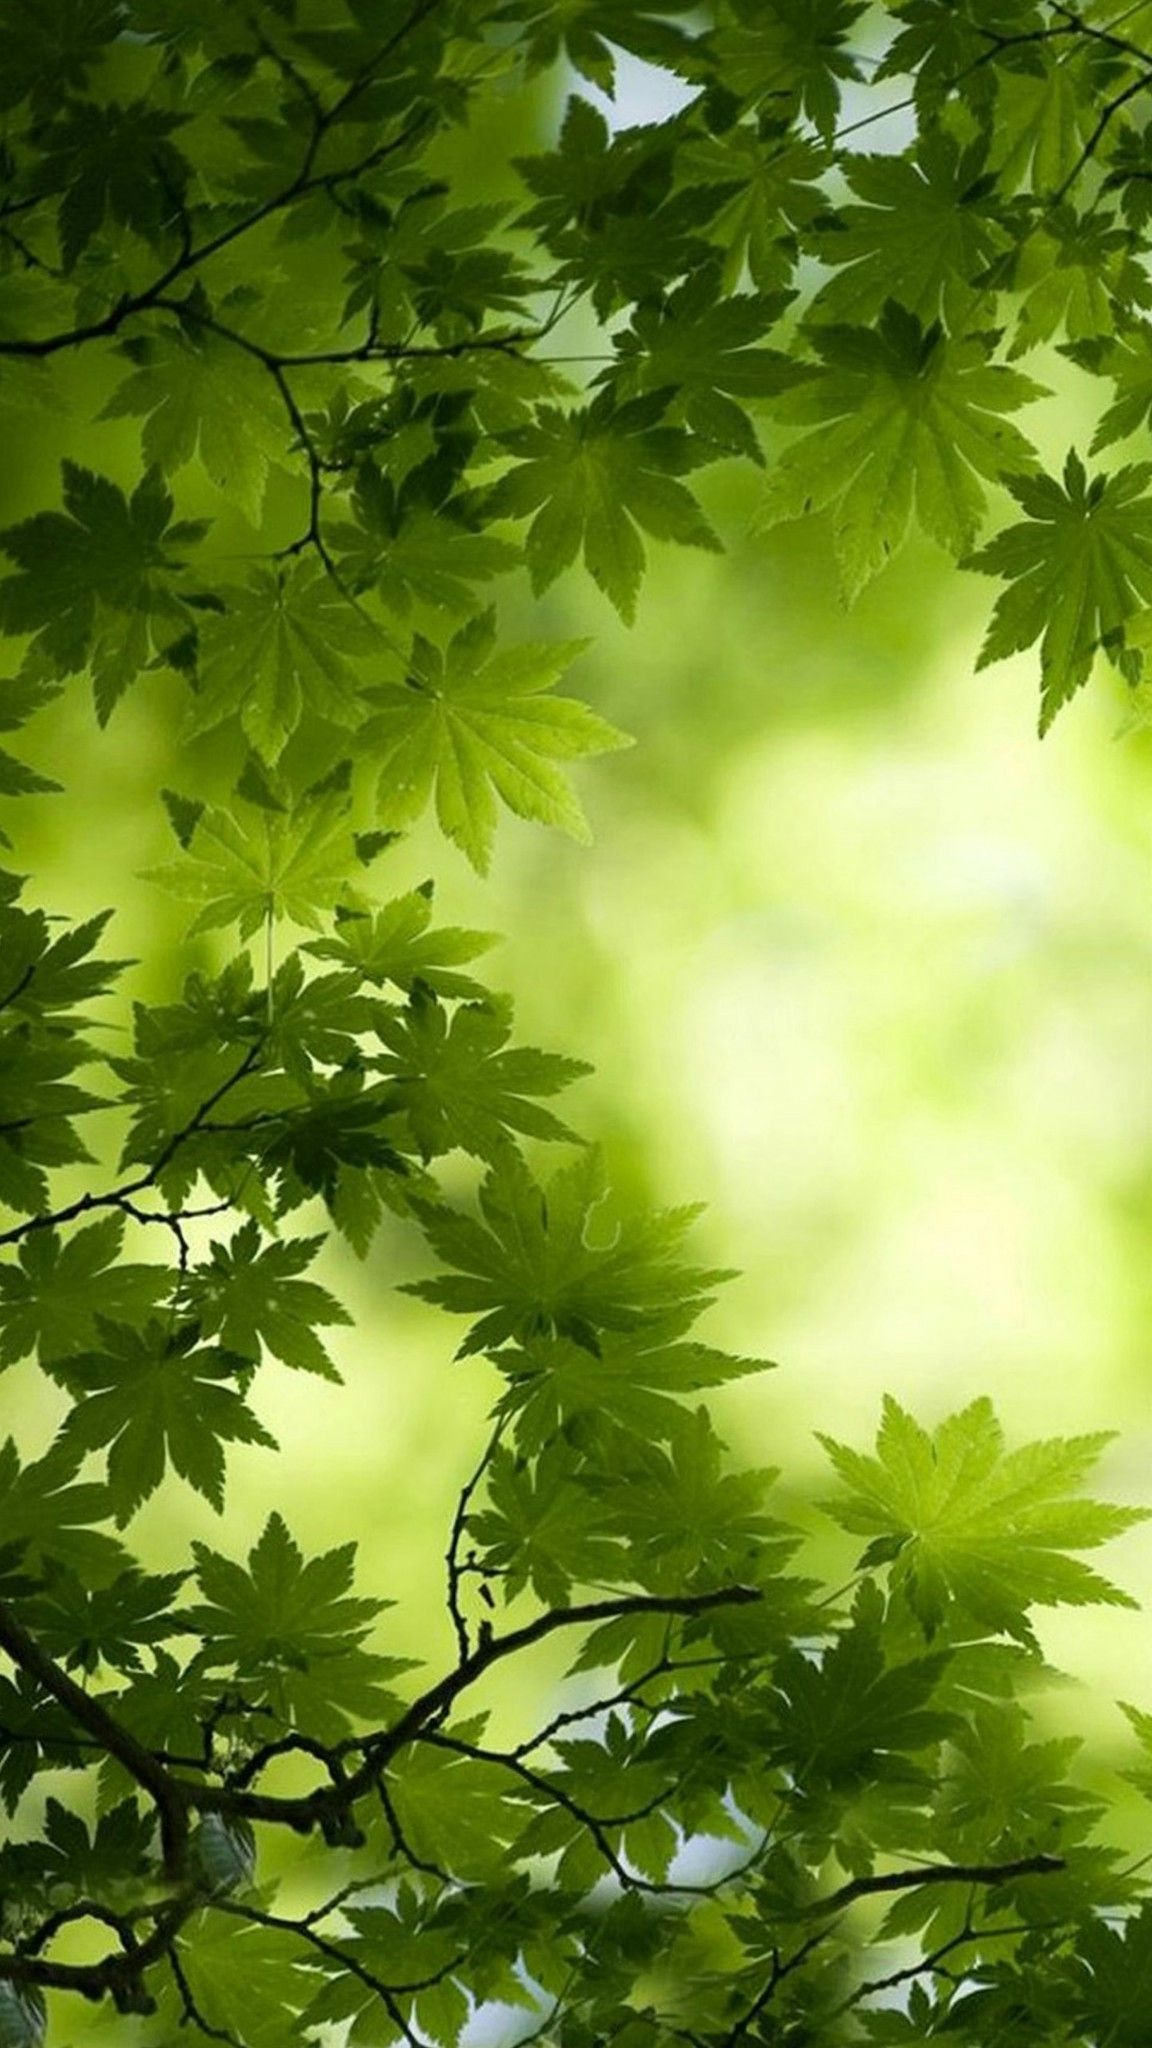 Green Tree Leaves Wallpaper Beautiful Nature Green Nature Nature Pictures